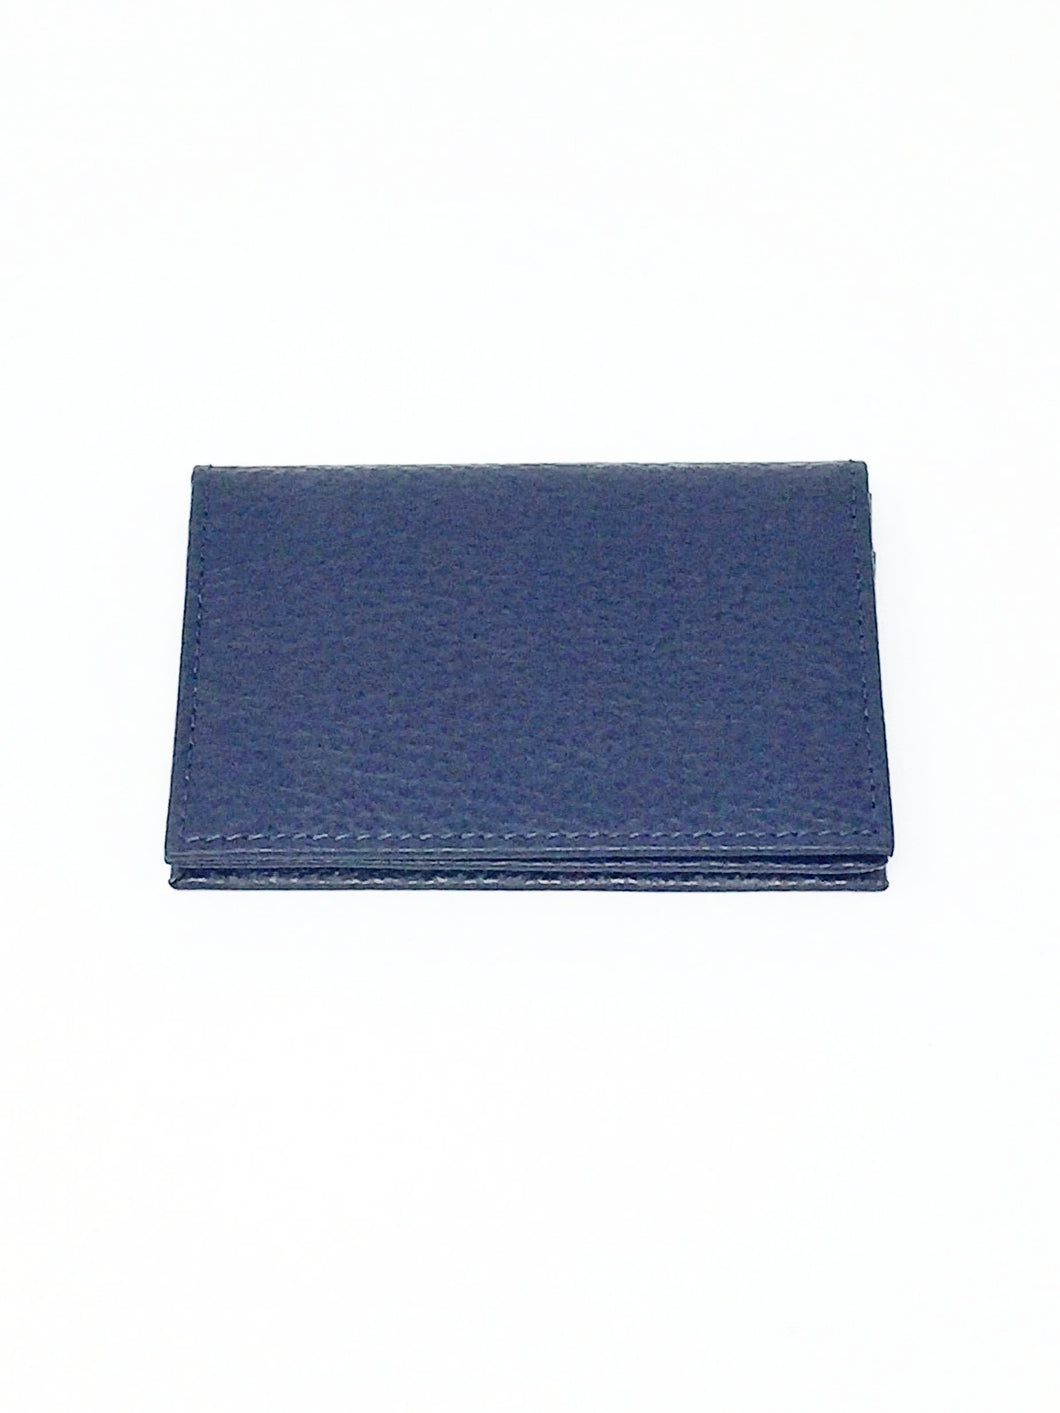 Italian hand made blue leather card holder